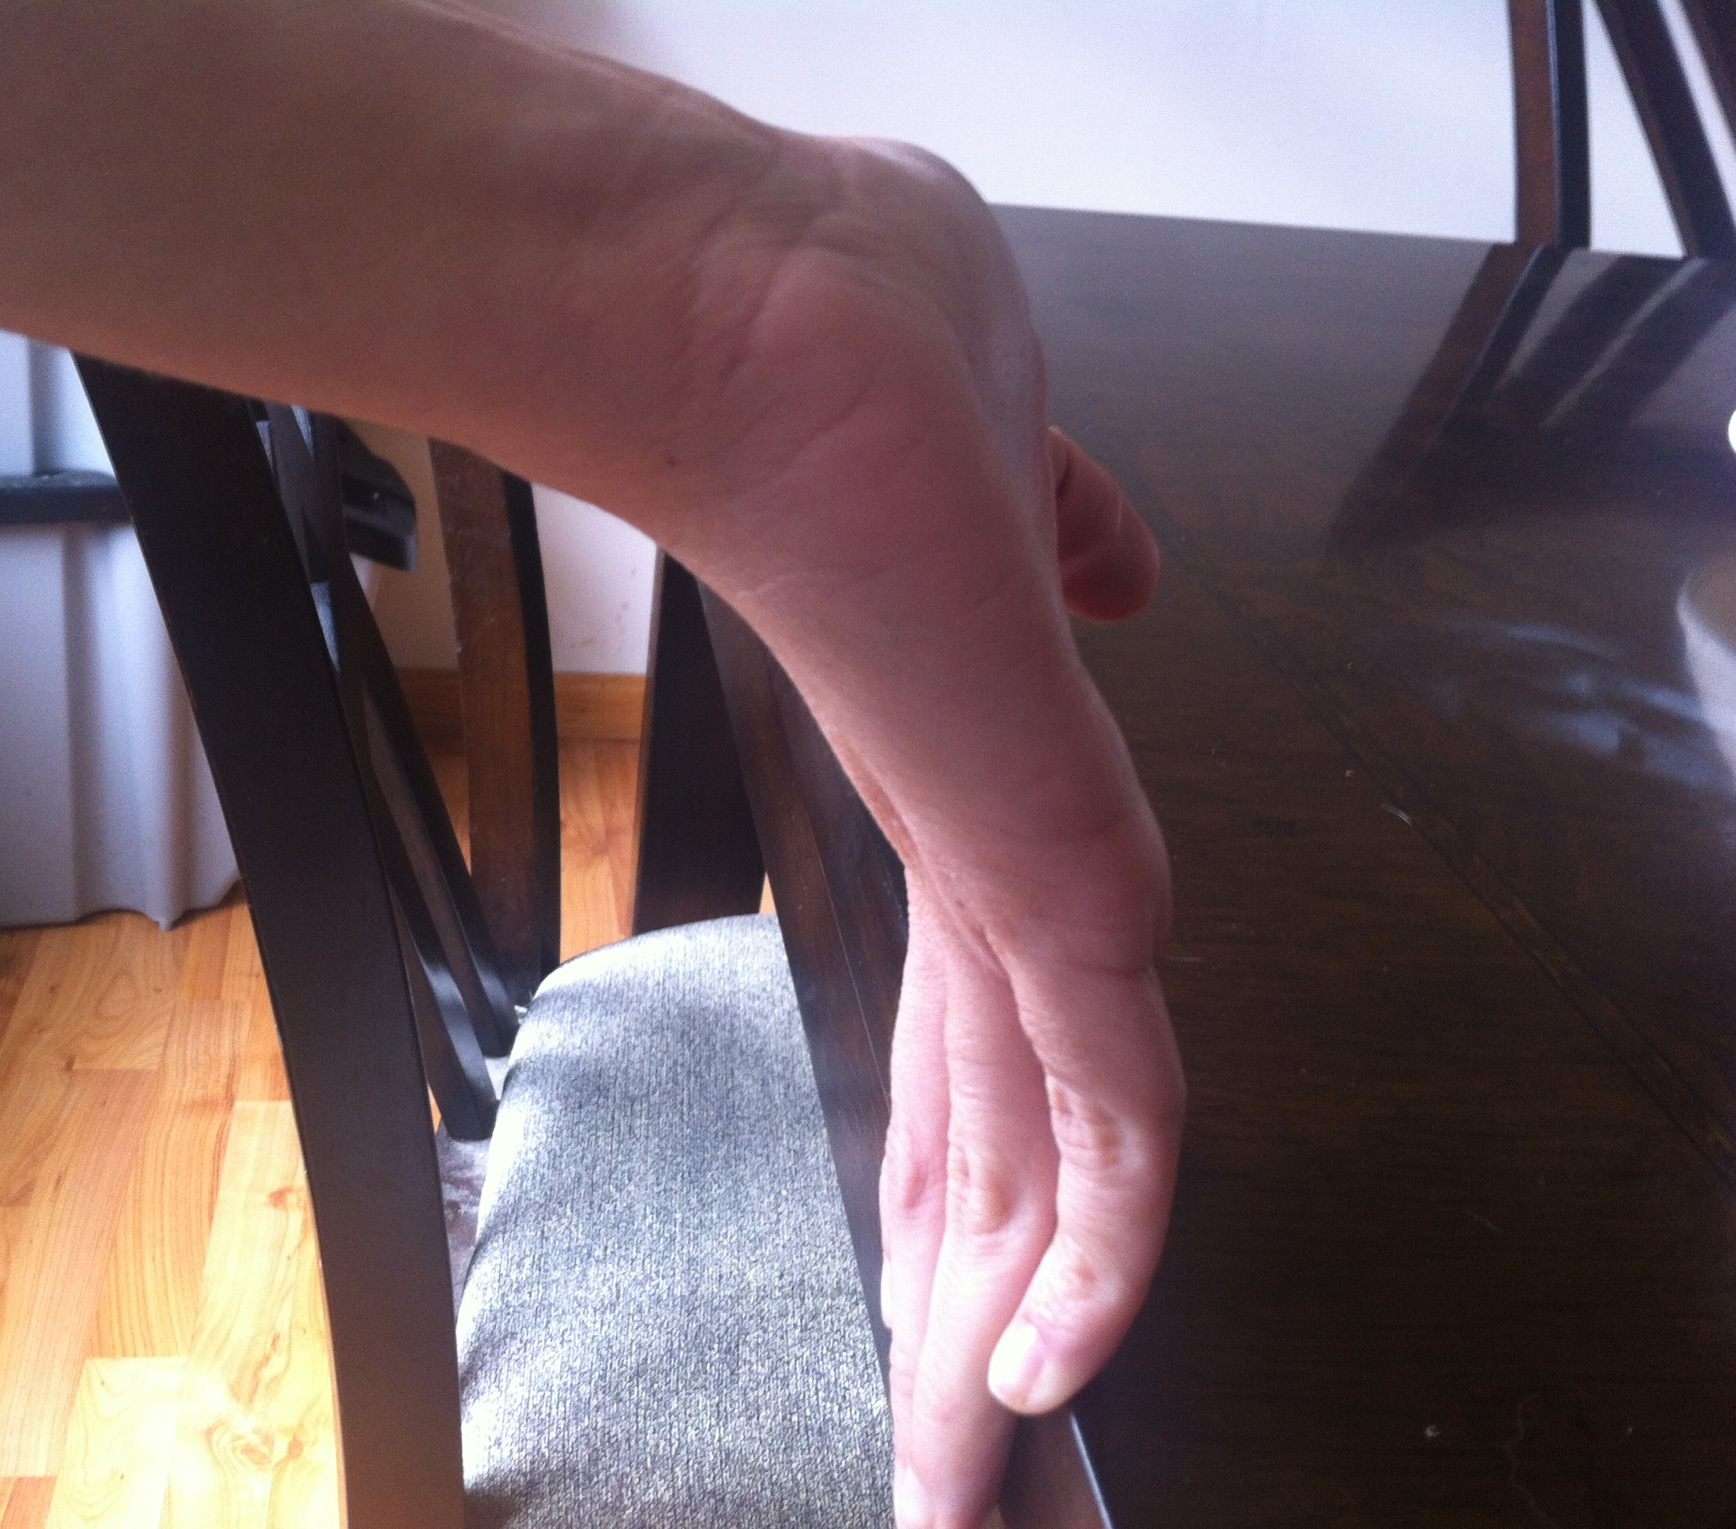 Stretching Hand Against Table